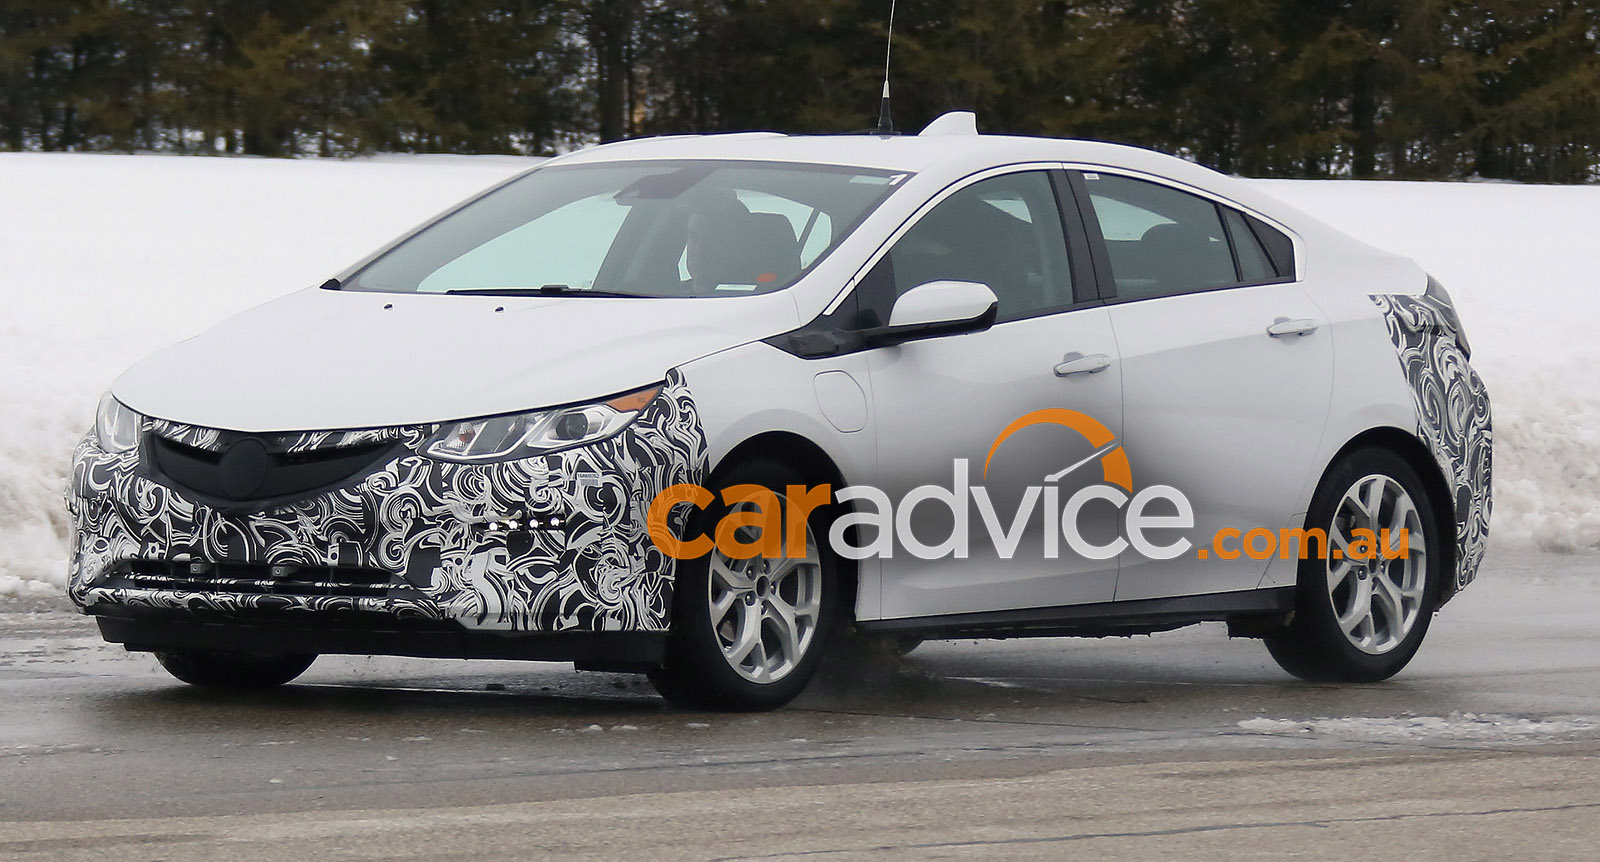 2017 Chevrolet Volt >> 2017 Opel Ampera spied in Europe: Holden Ampera to follow in Australia? - photos | CarAdvice